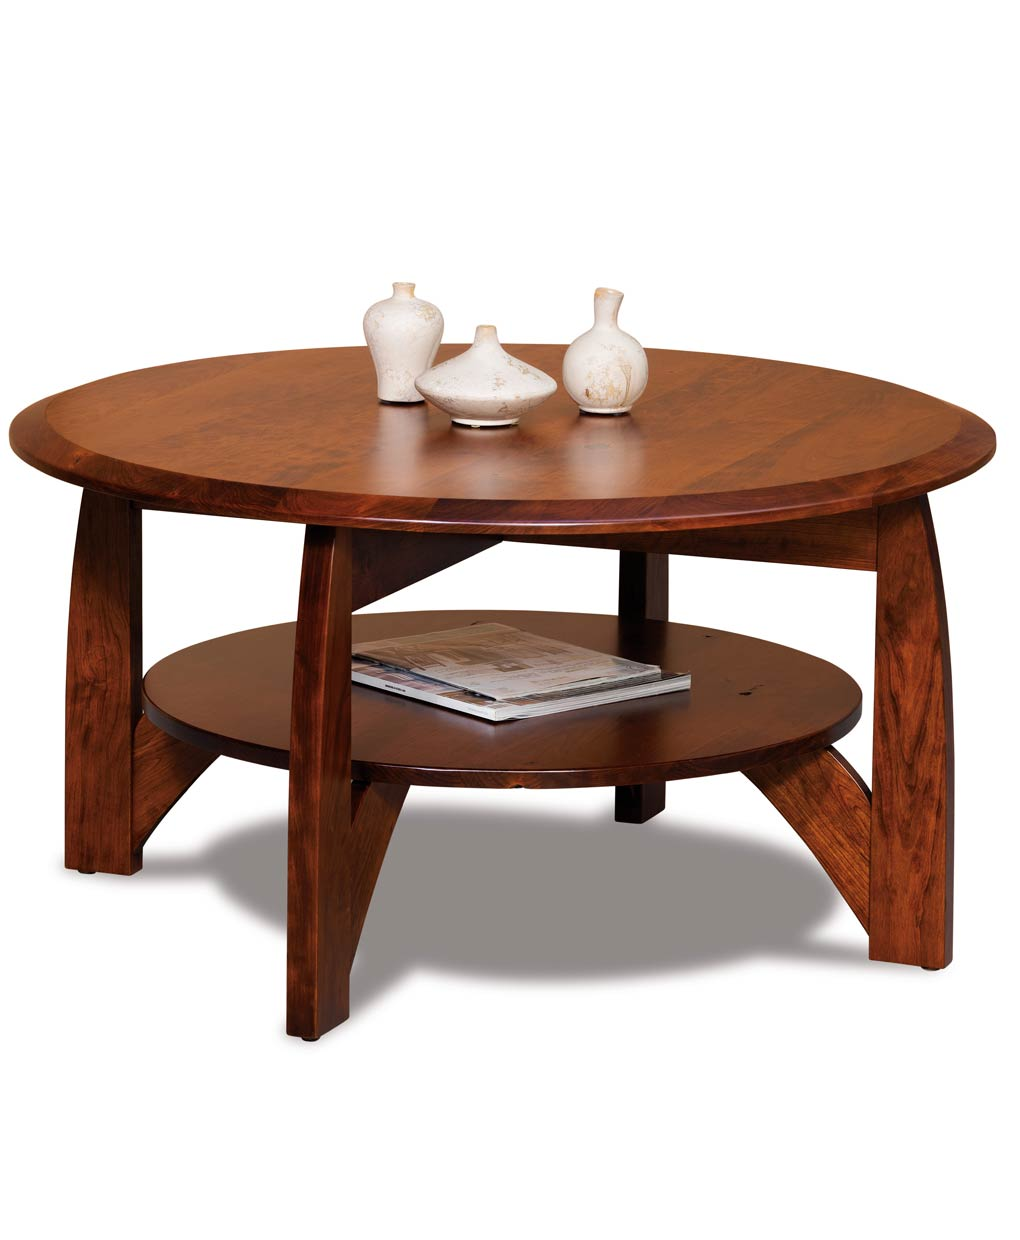 Pine Brook Boulder Mountain Residence Living Room: Boulder Creek Round Coffee Table